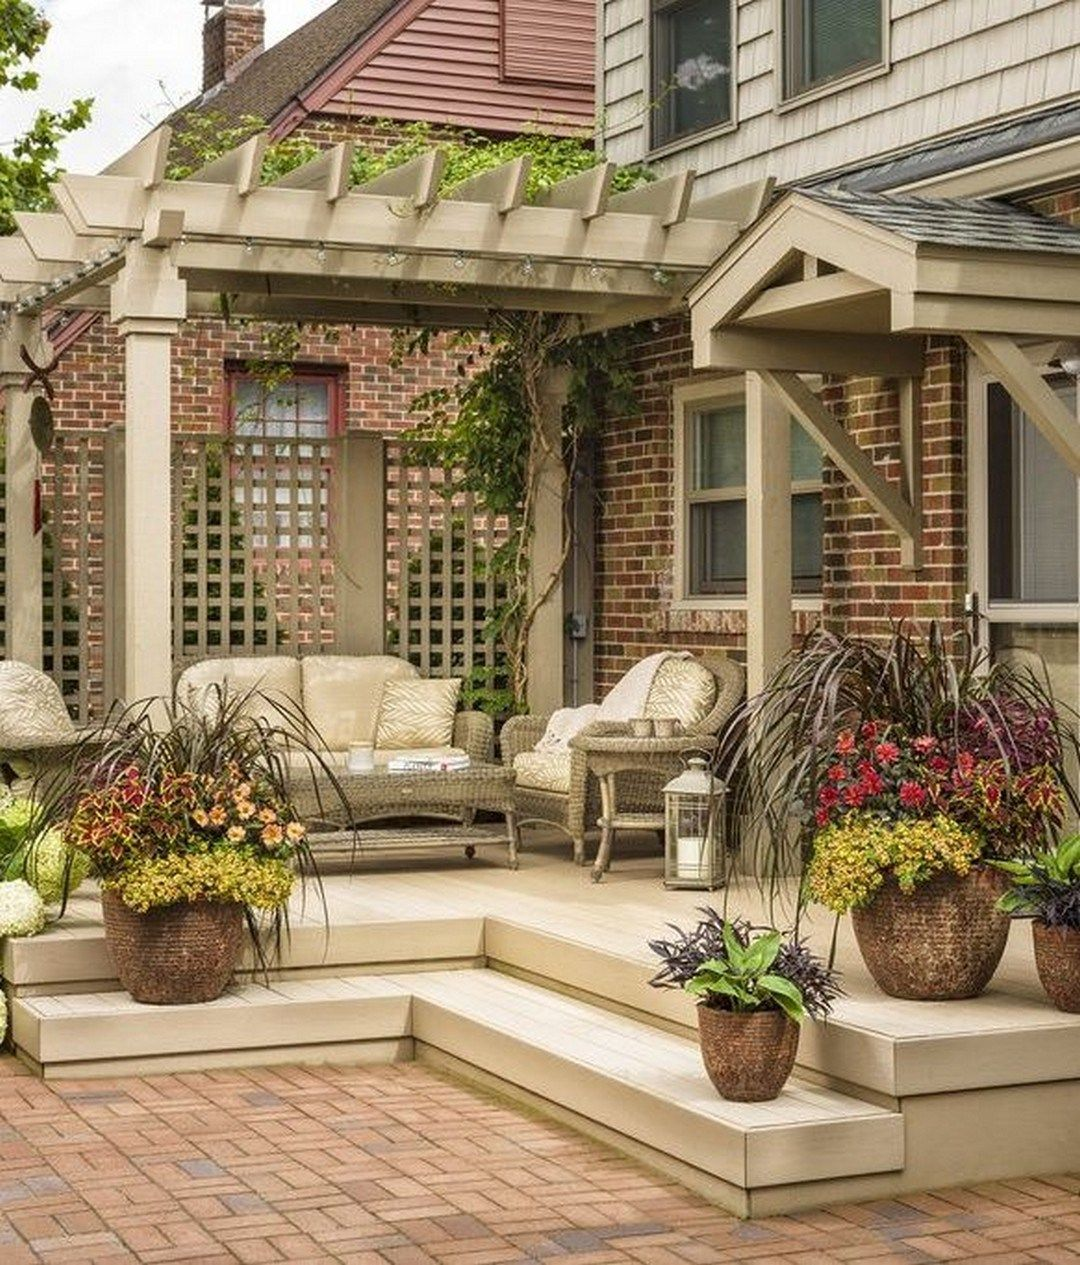 99 Deck Decorating Ideas Pergola Lights And Cement Planters 63